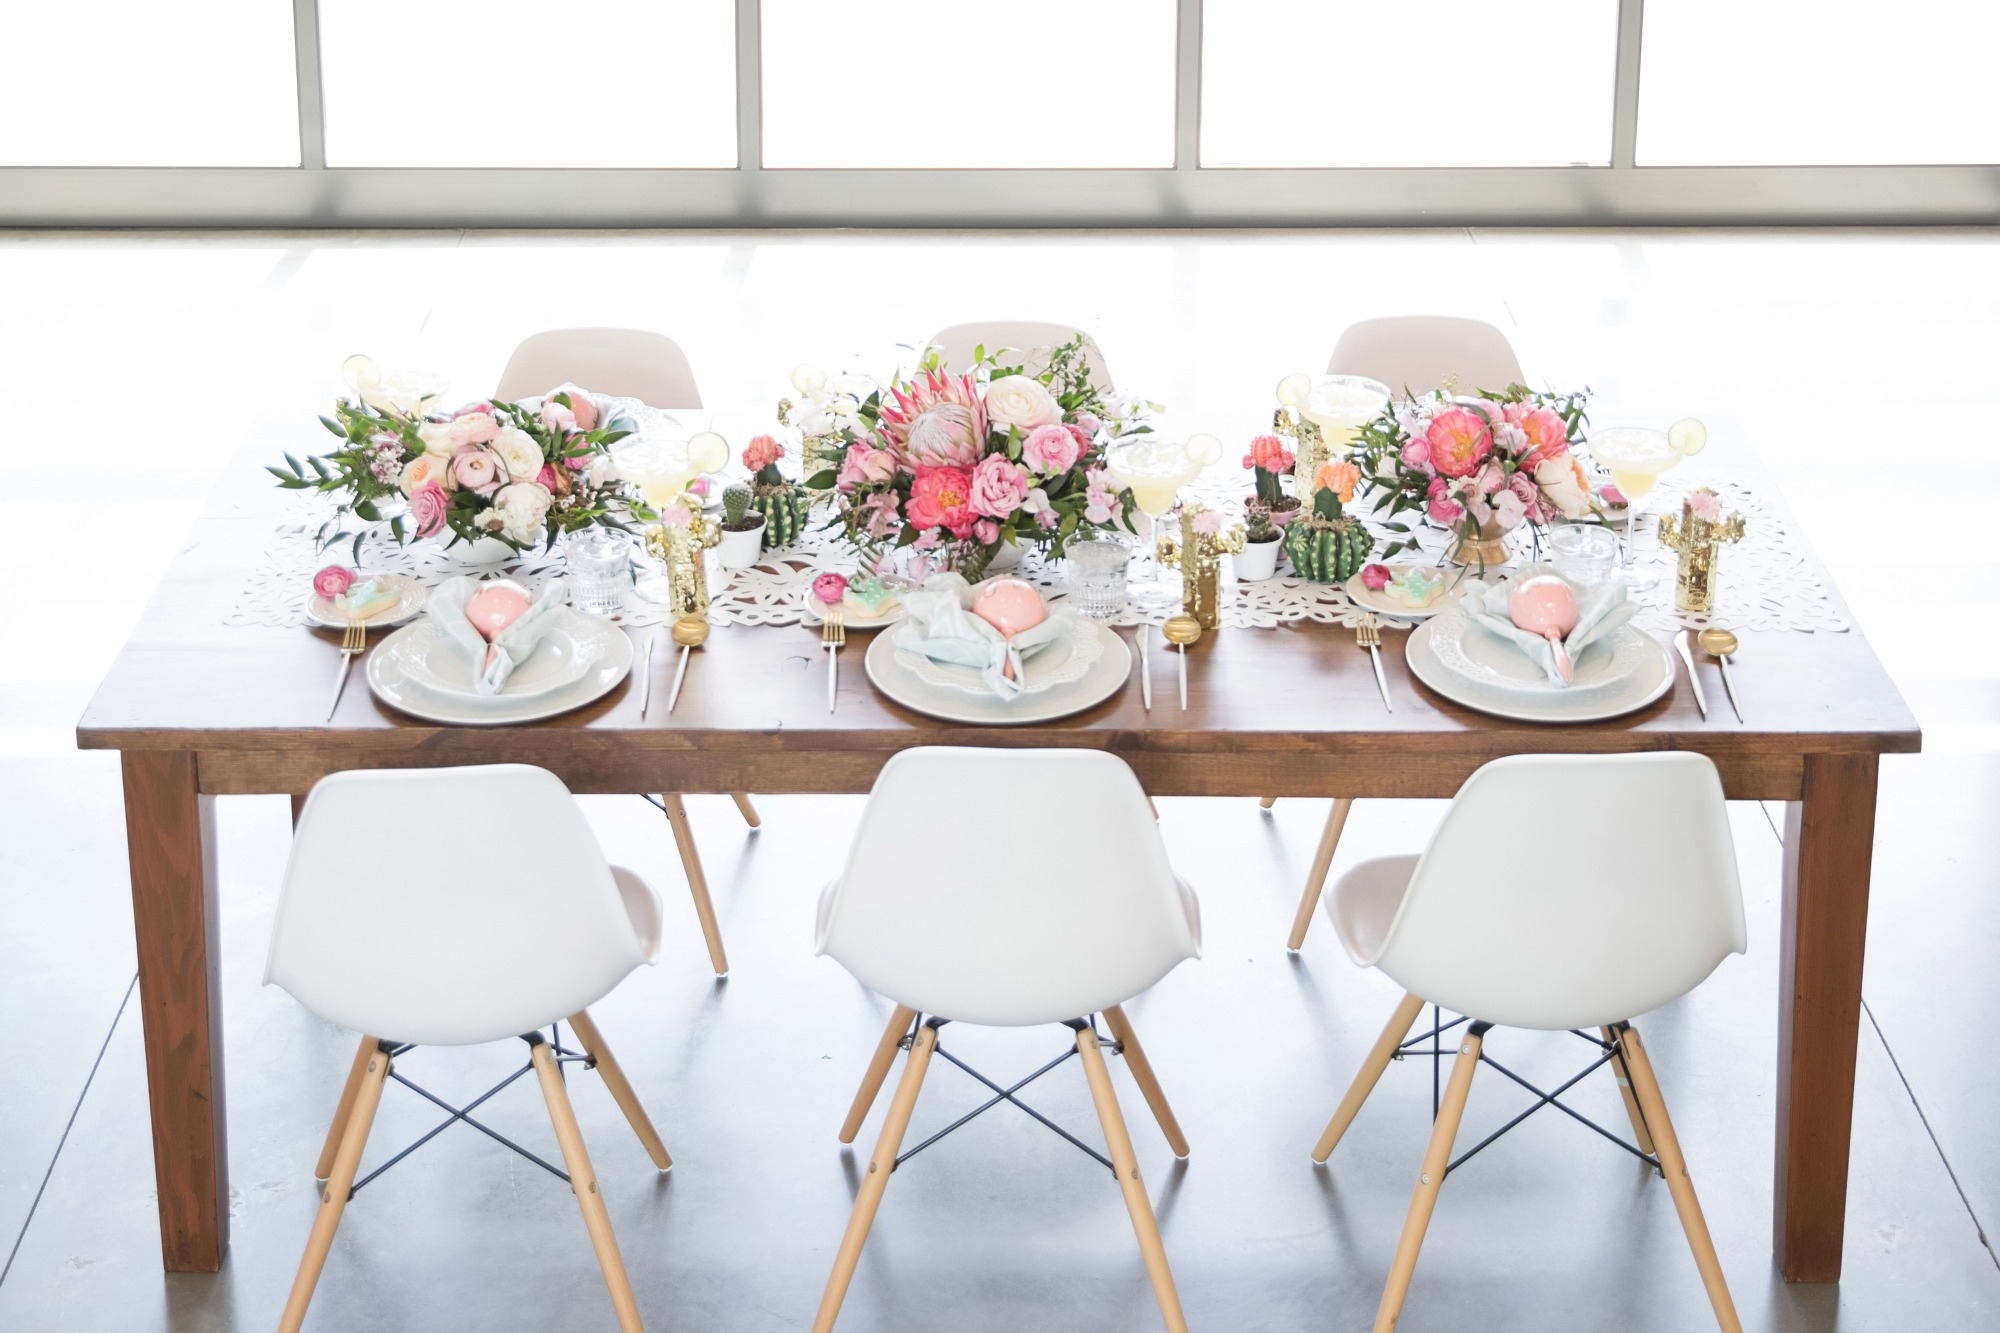 Tablescape and Place Settings from Chic Floral Fiesta Styled by One Stylish Party | Black Twine